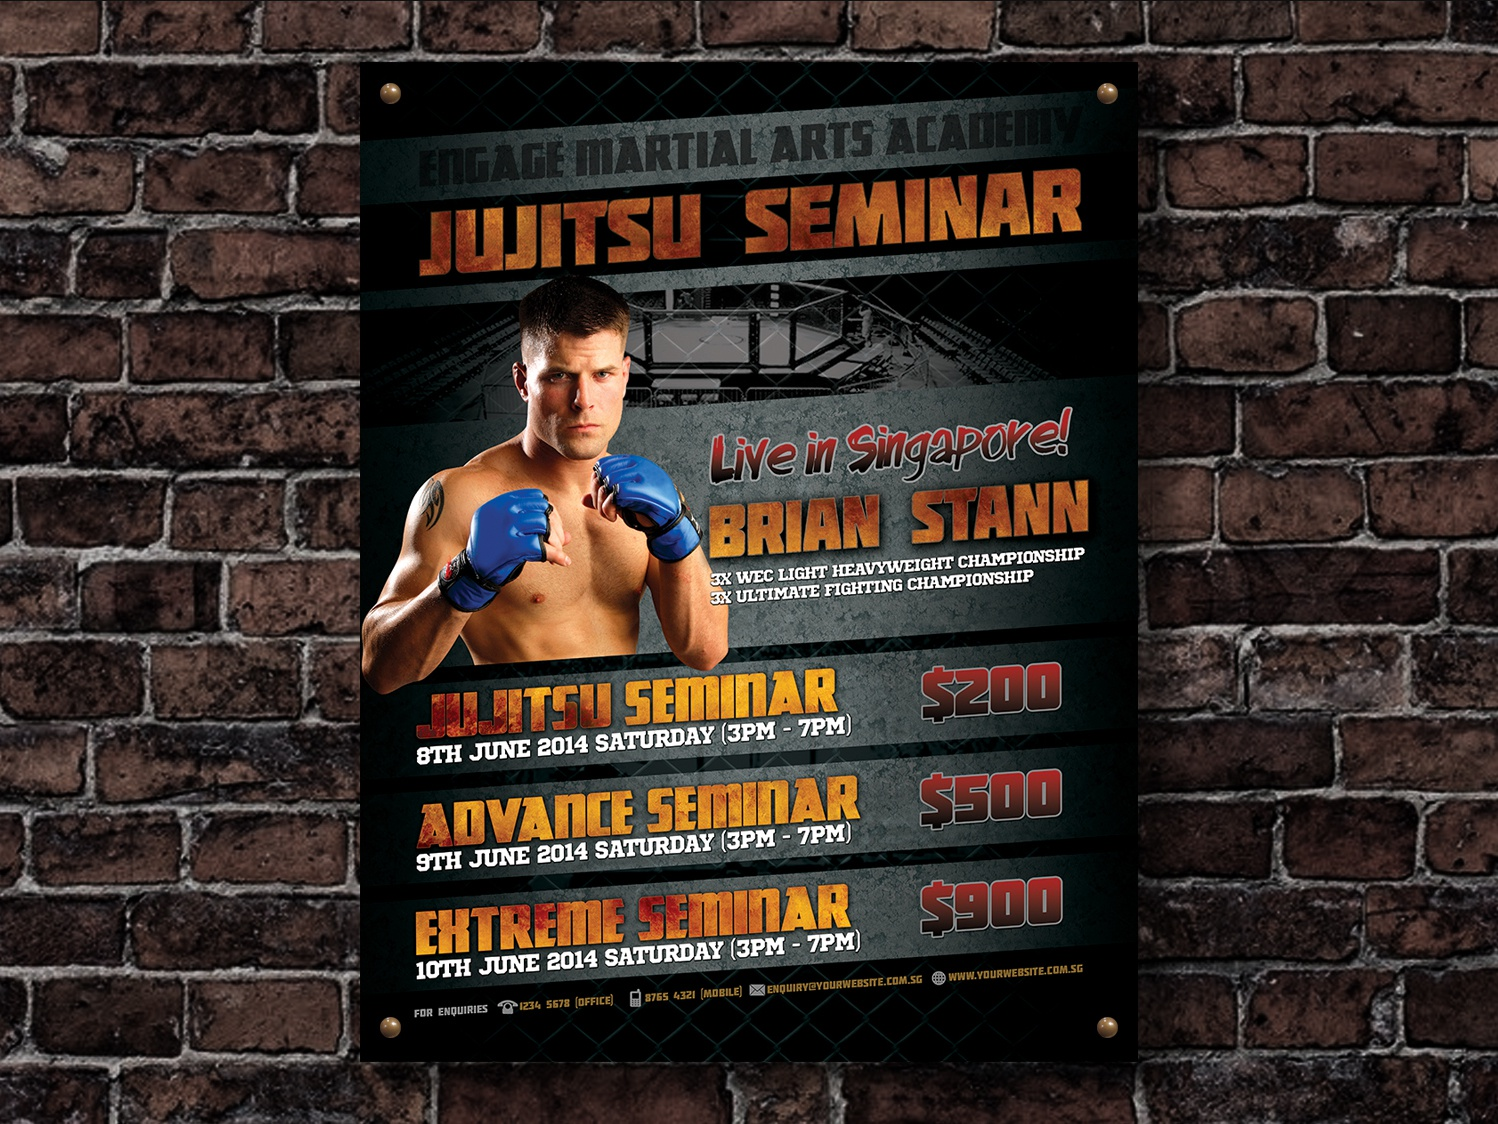 Flyer Design - MMA Seminar template flyer mma print poster design psd download fighter seminar event boxing